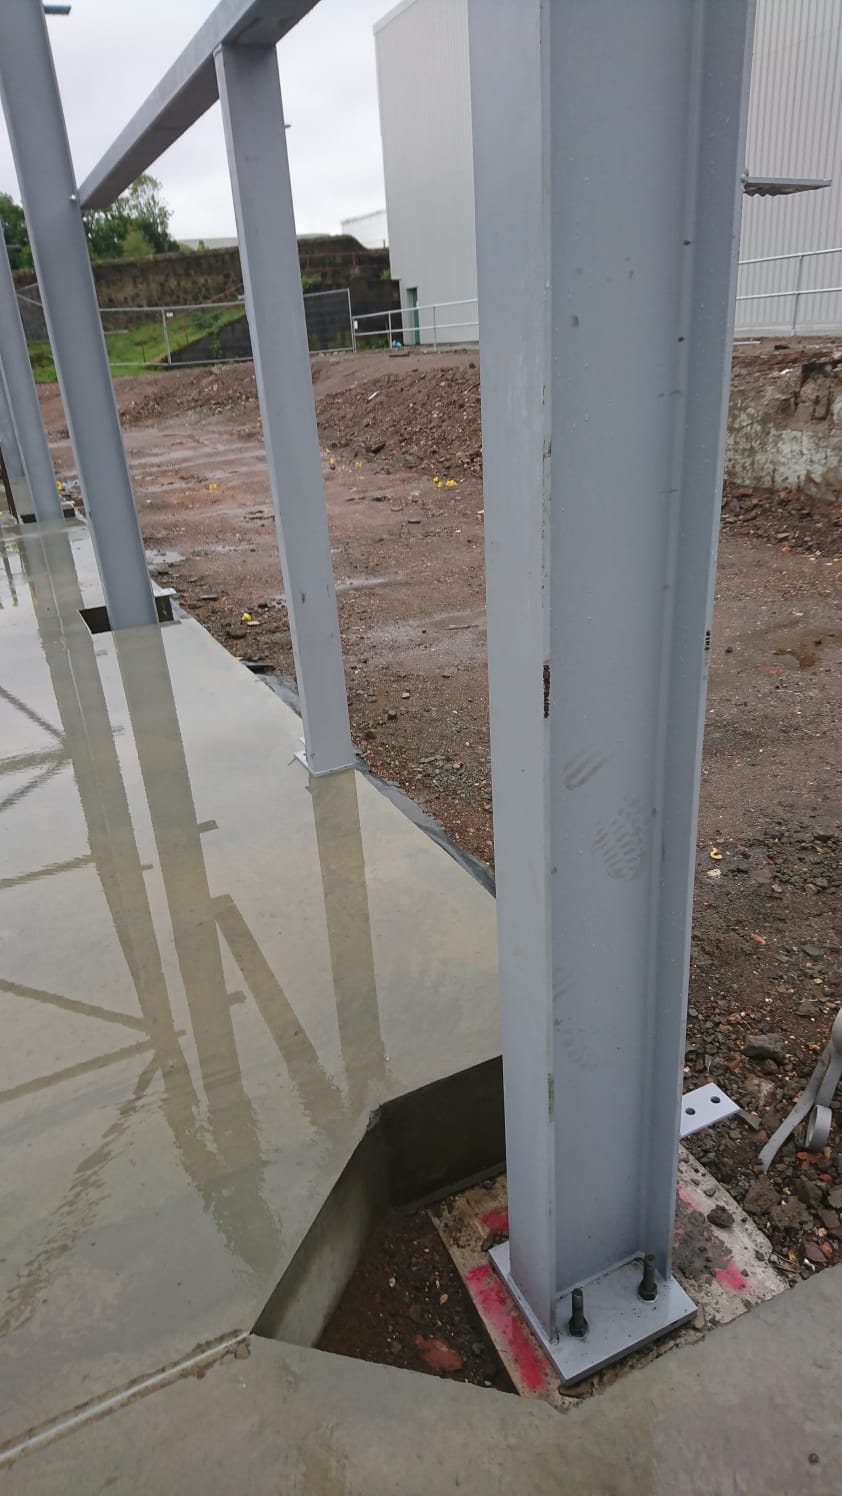 Steel beams being secured to the ground, creating a strong frame work.